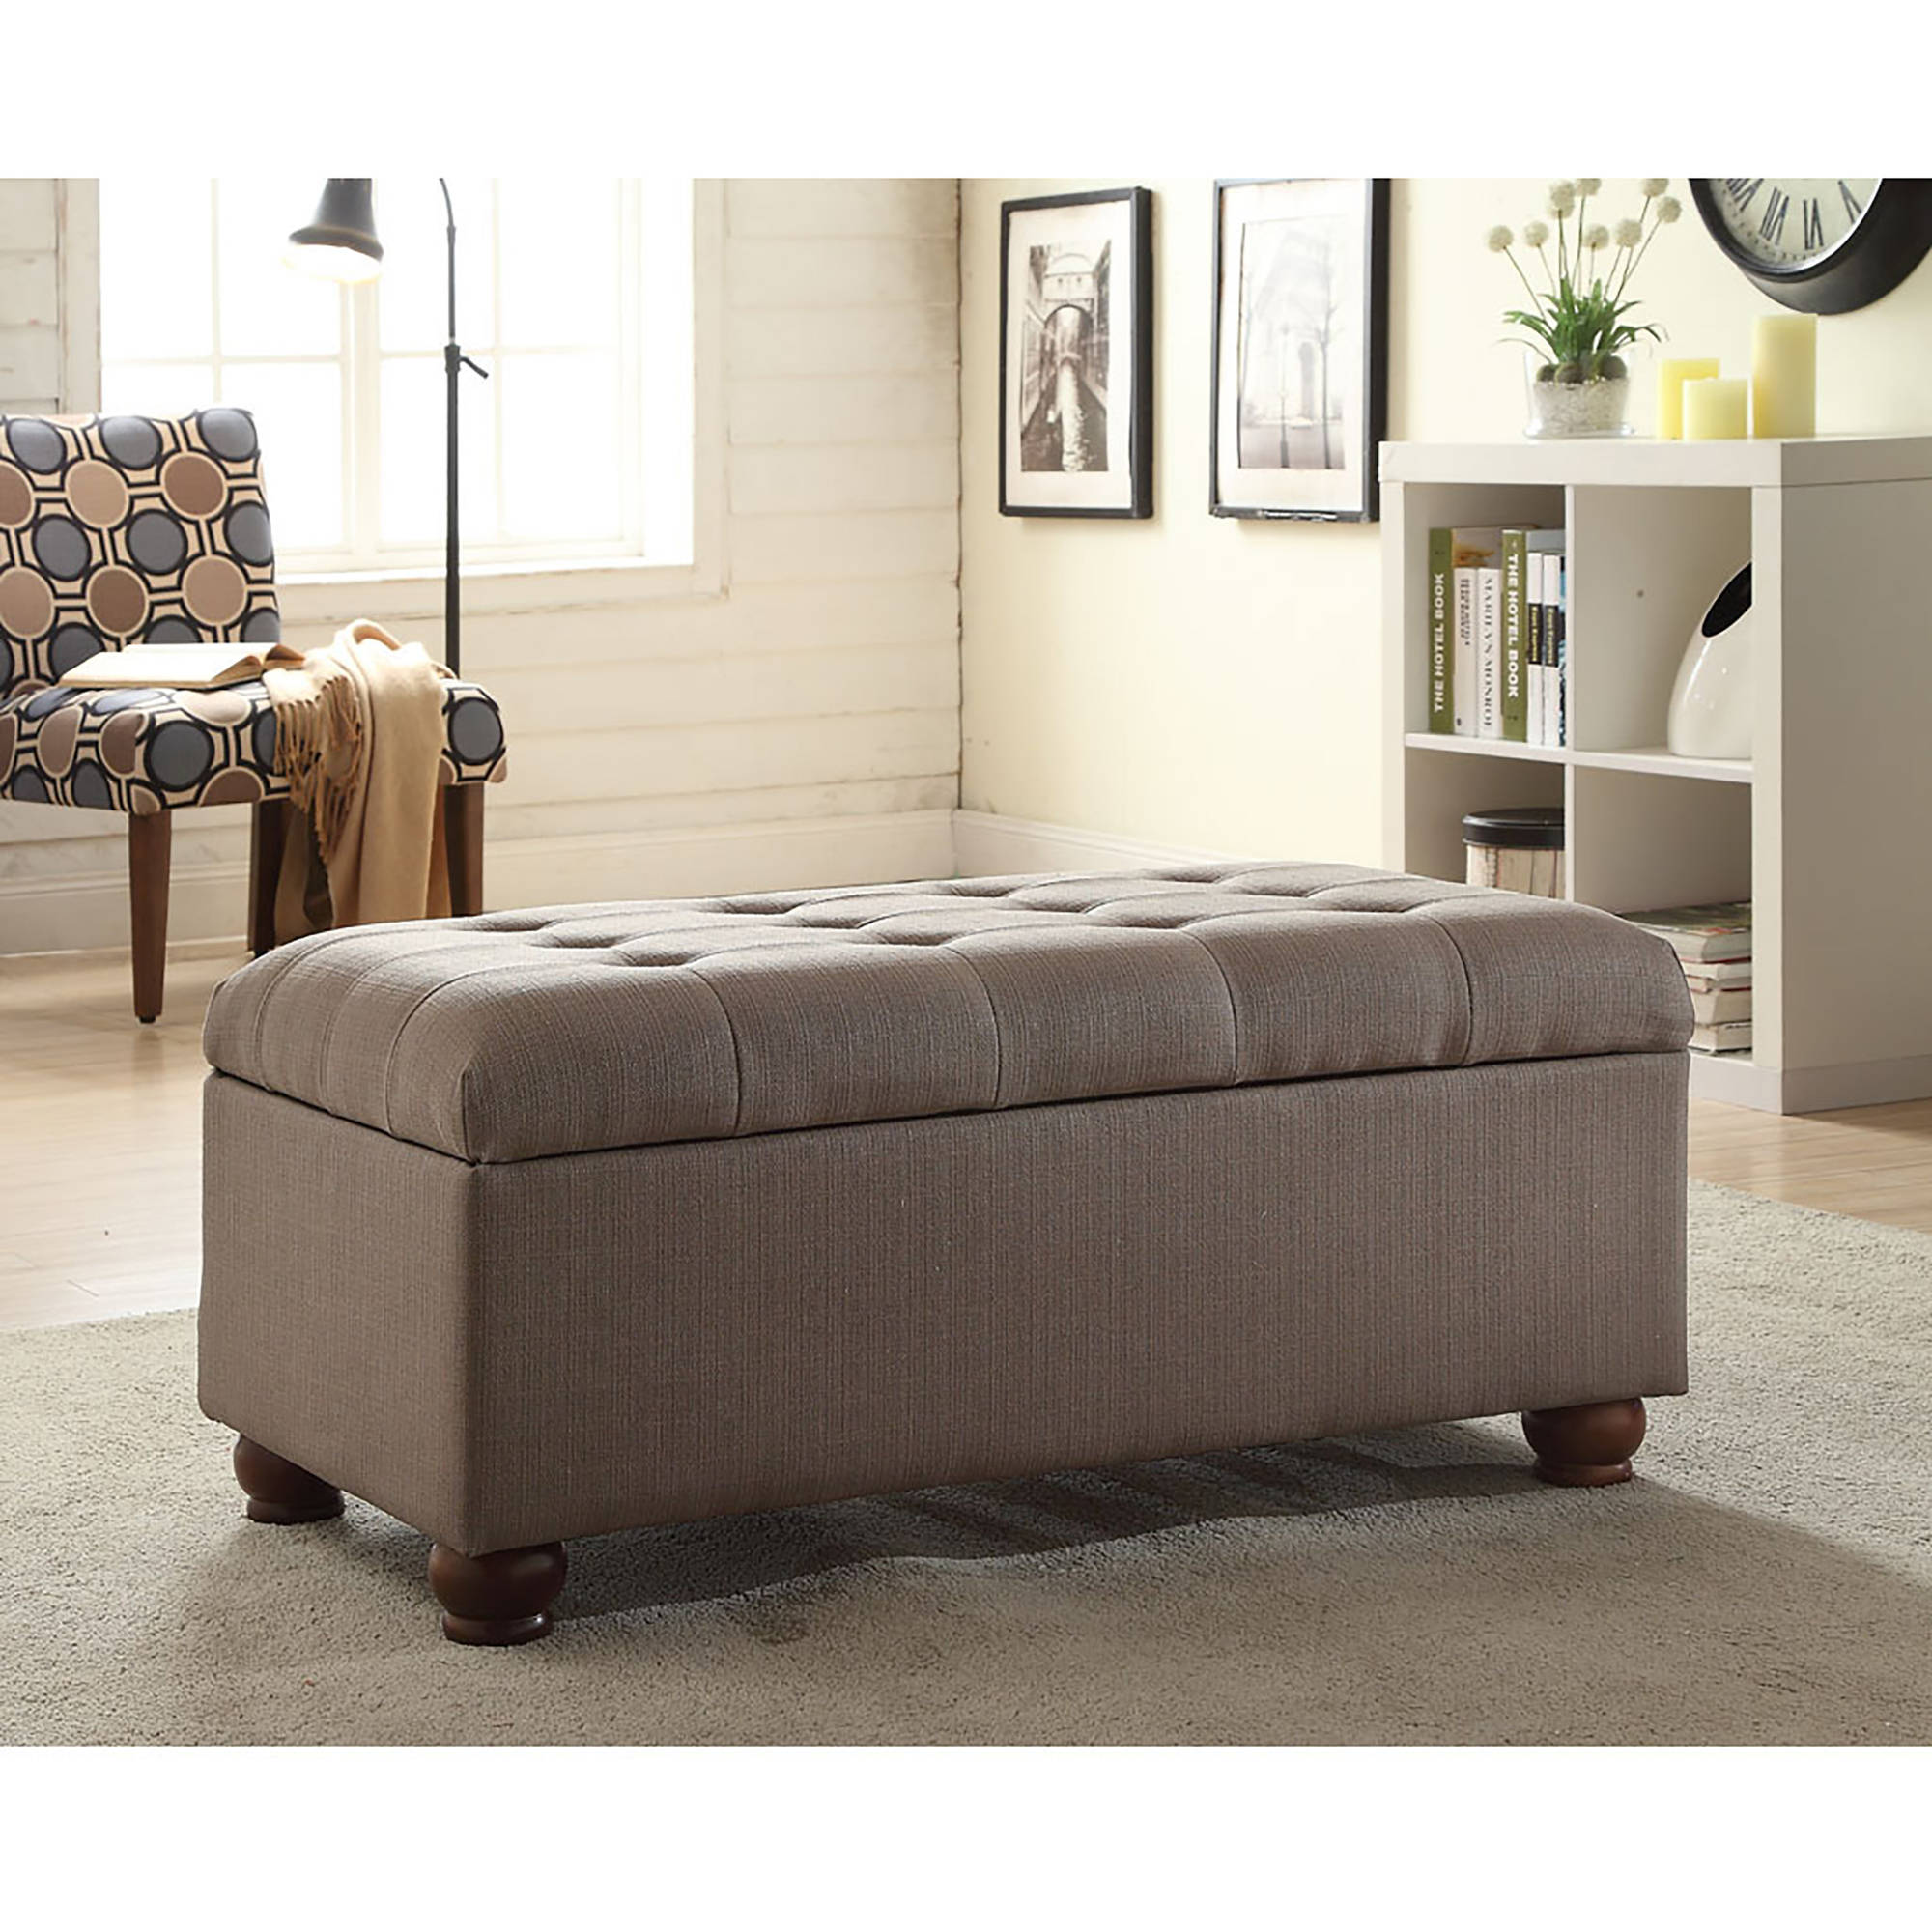 "Tufted 40"" Storage Bench with Turned Legs, Dolphin Gray"